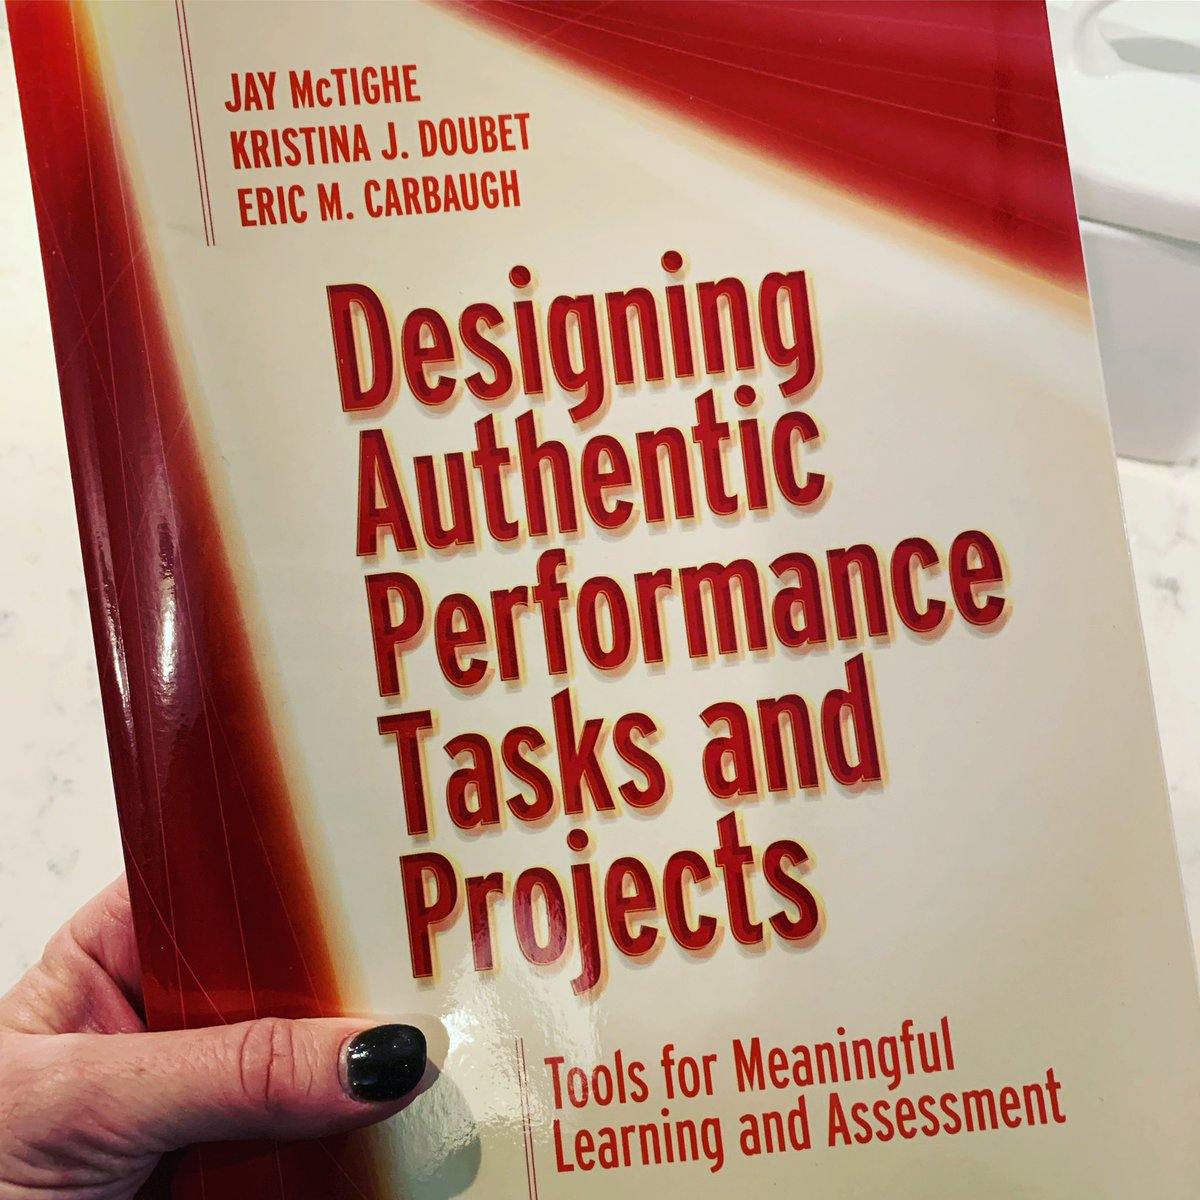 We are so excited!!! This book is chock-full of practical ideas for designing and *Implementing* performance tasks and PBL! @ASCD @emc7x @jaymctighe https://t.co/EV5F23GkLR